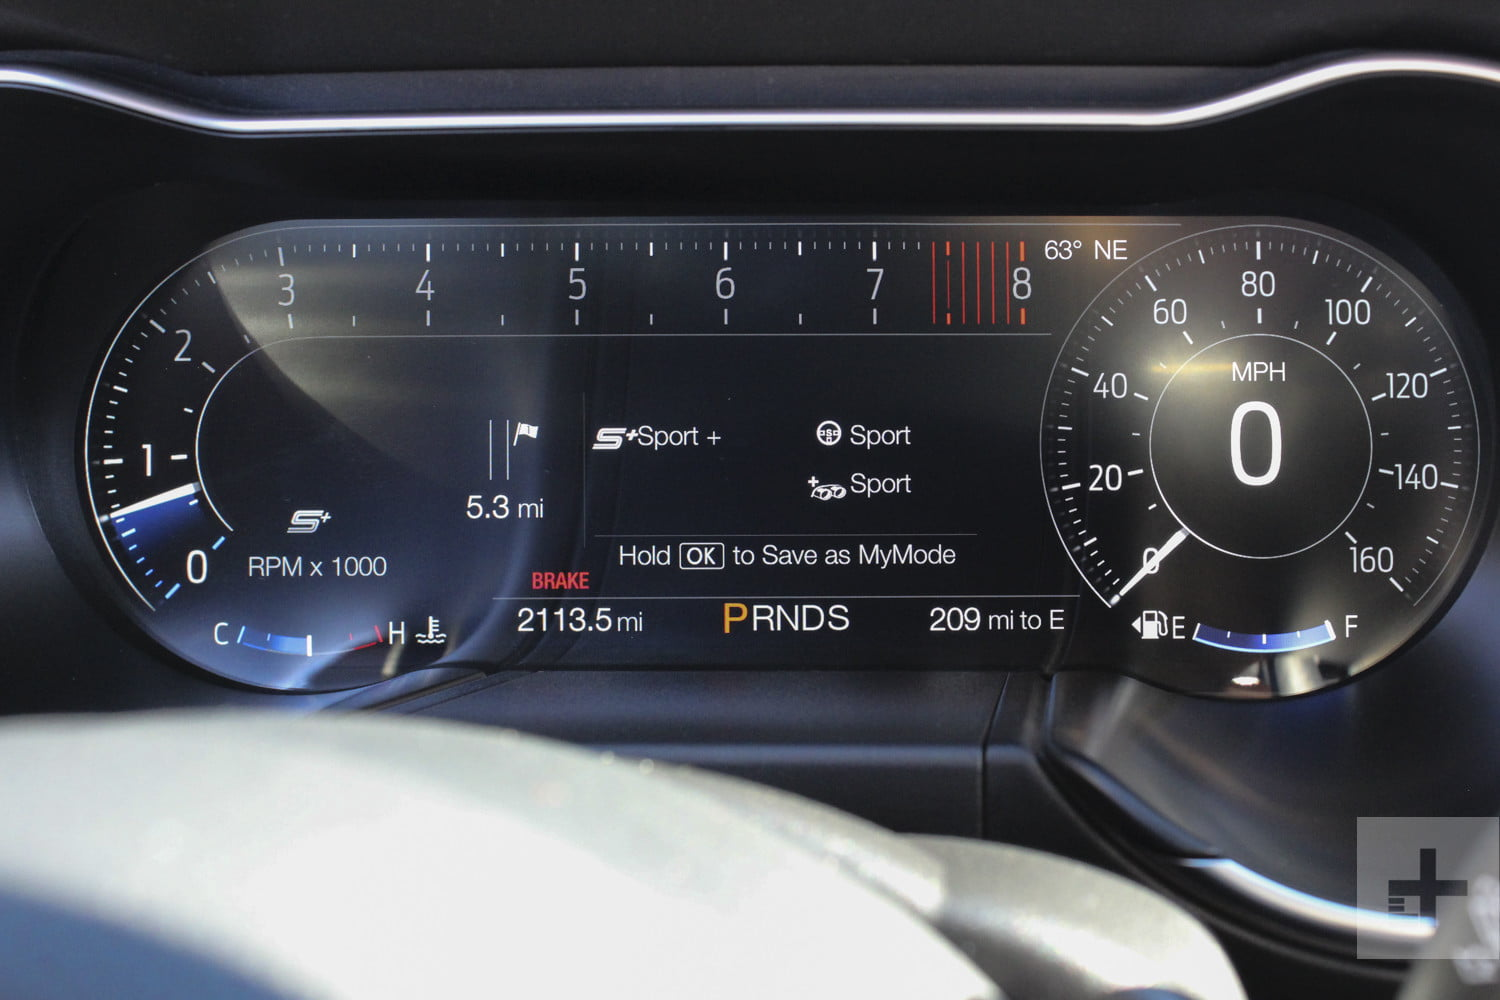 2018 ford mustang gt review 227